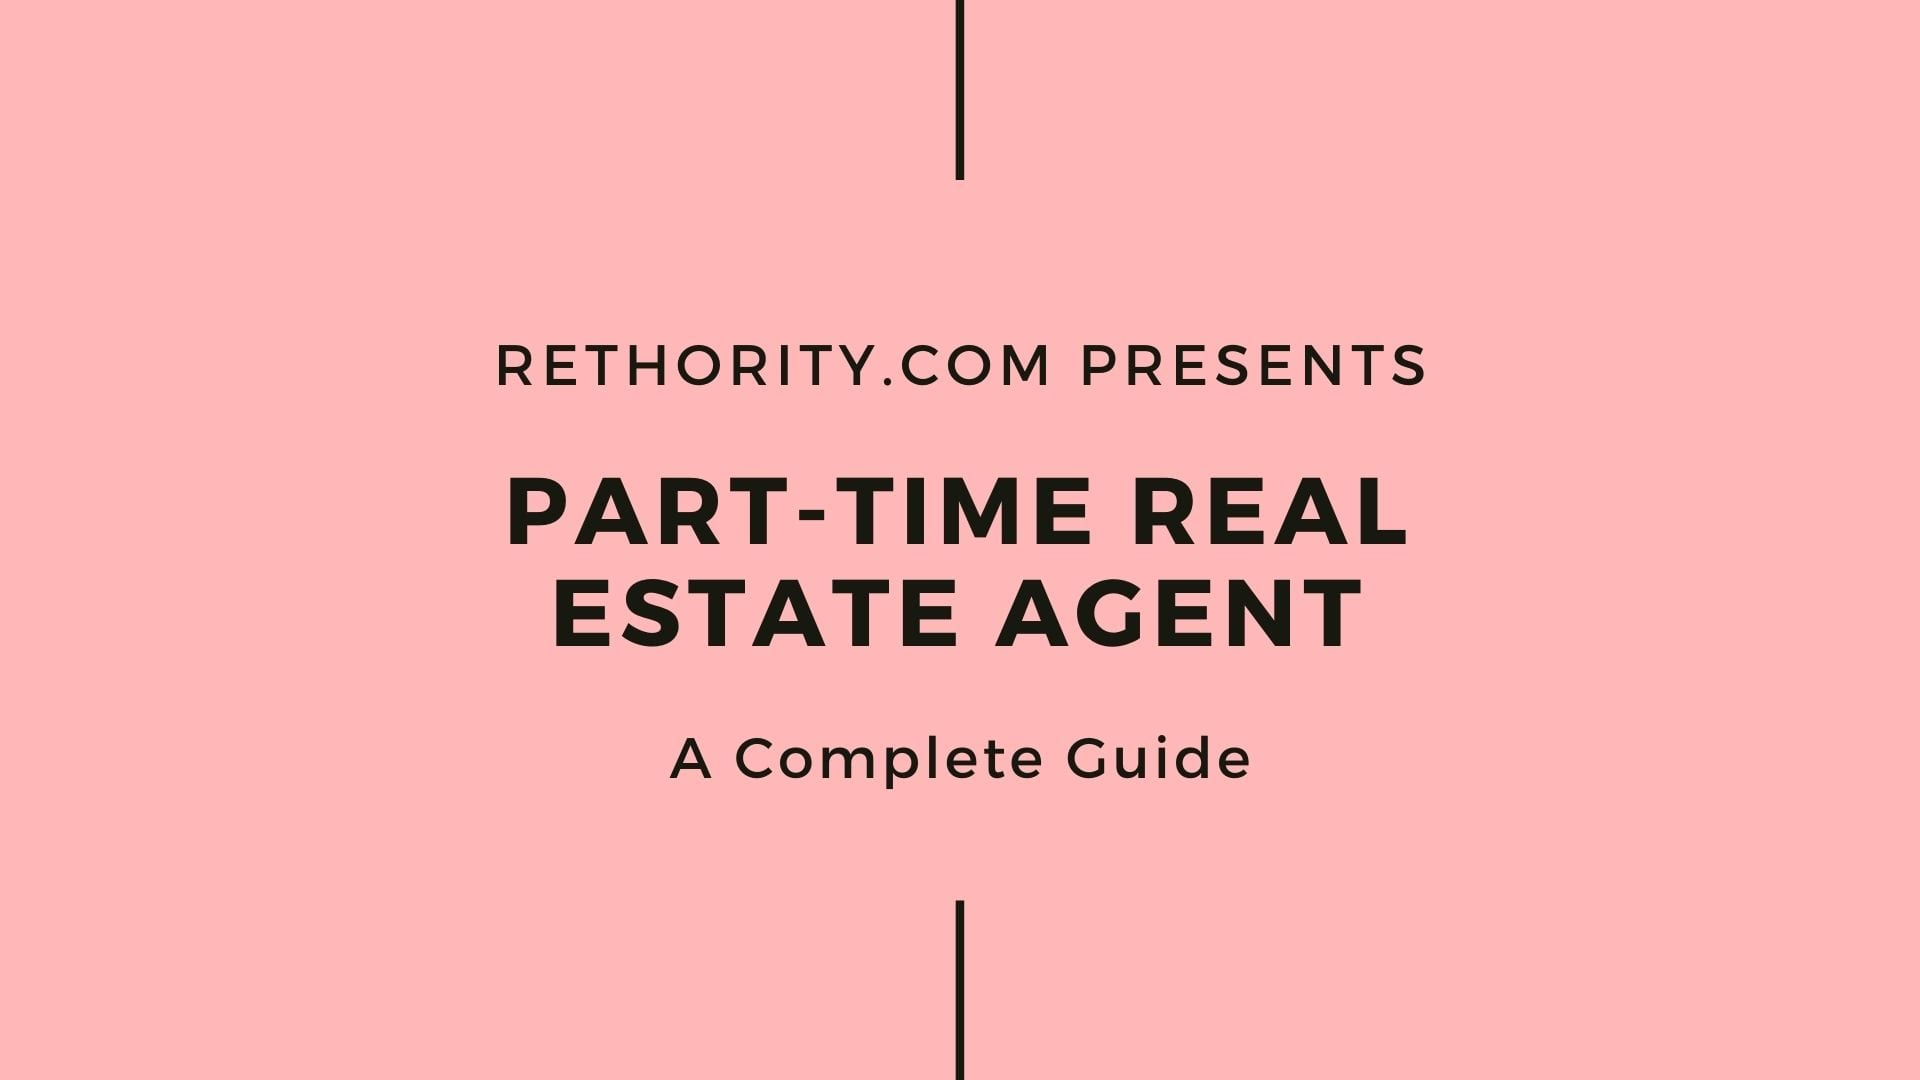 Part-Time Real Estate Agent graphic against salmon background